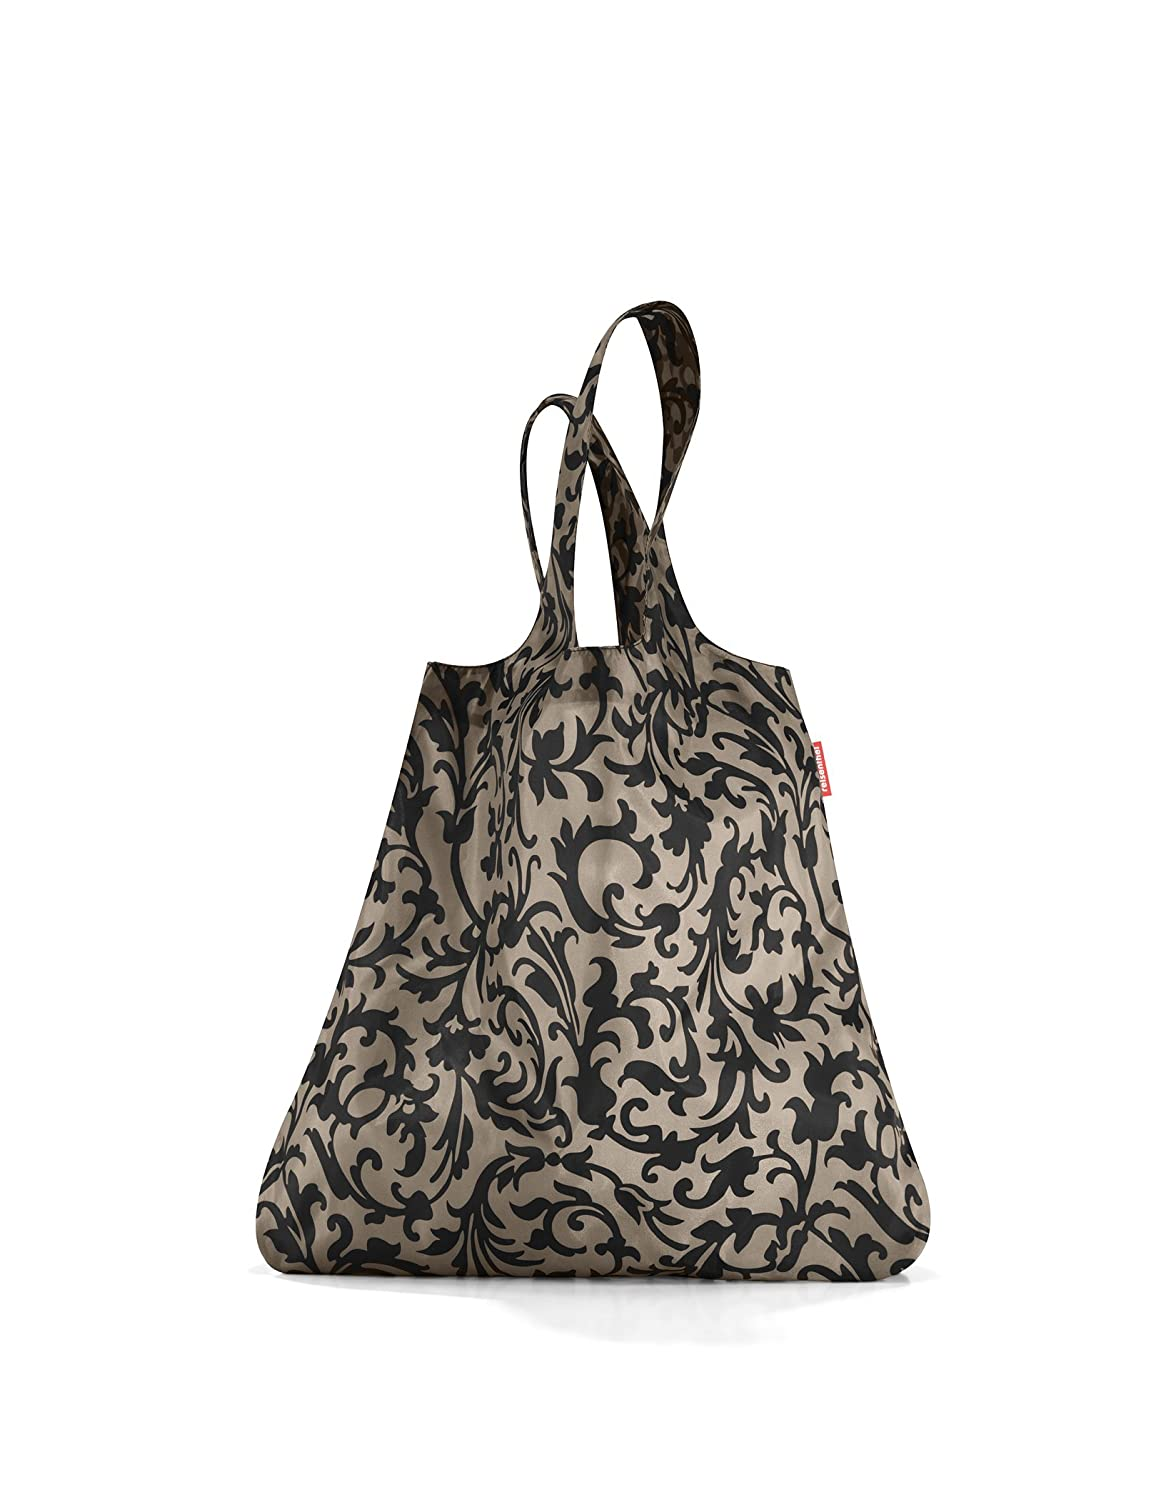 Baroque Taupe reisenthel Mini Maxi Shopper Foldable Reusable Shopping Tote with Elastic Band